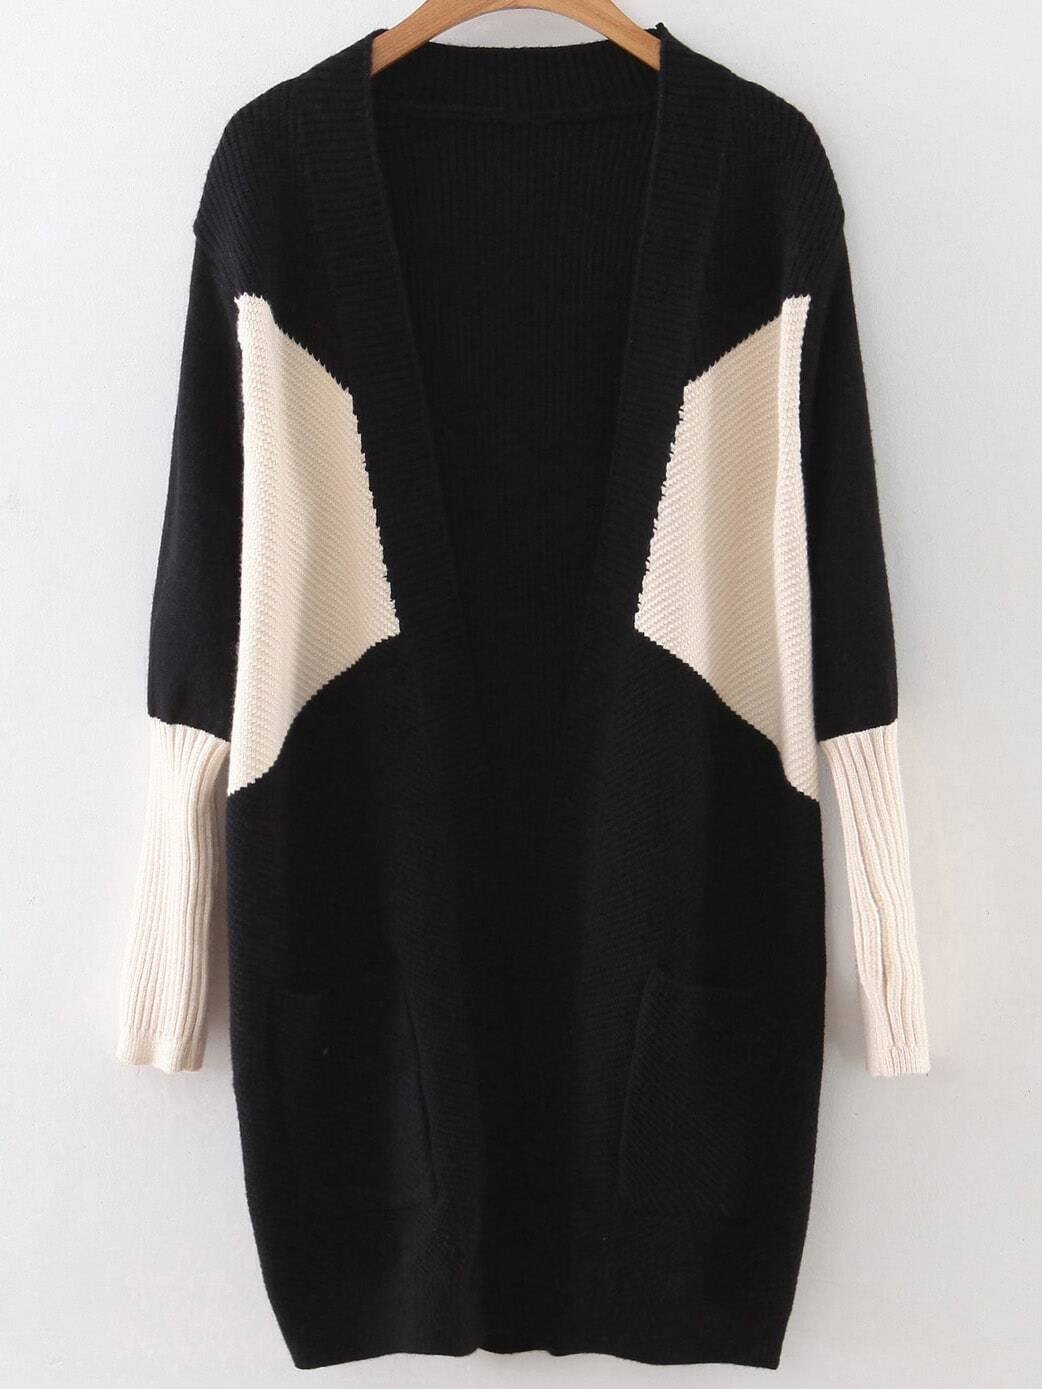 Black Color Block Ribbed Trim Cardigan With Pockets sweater160923221